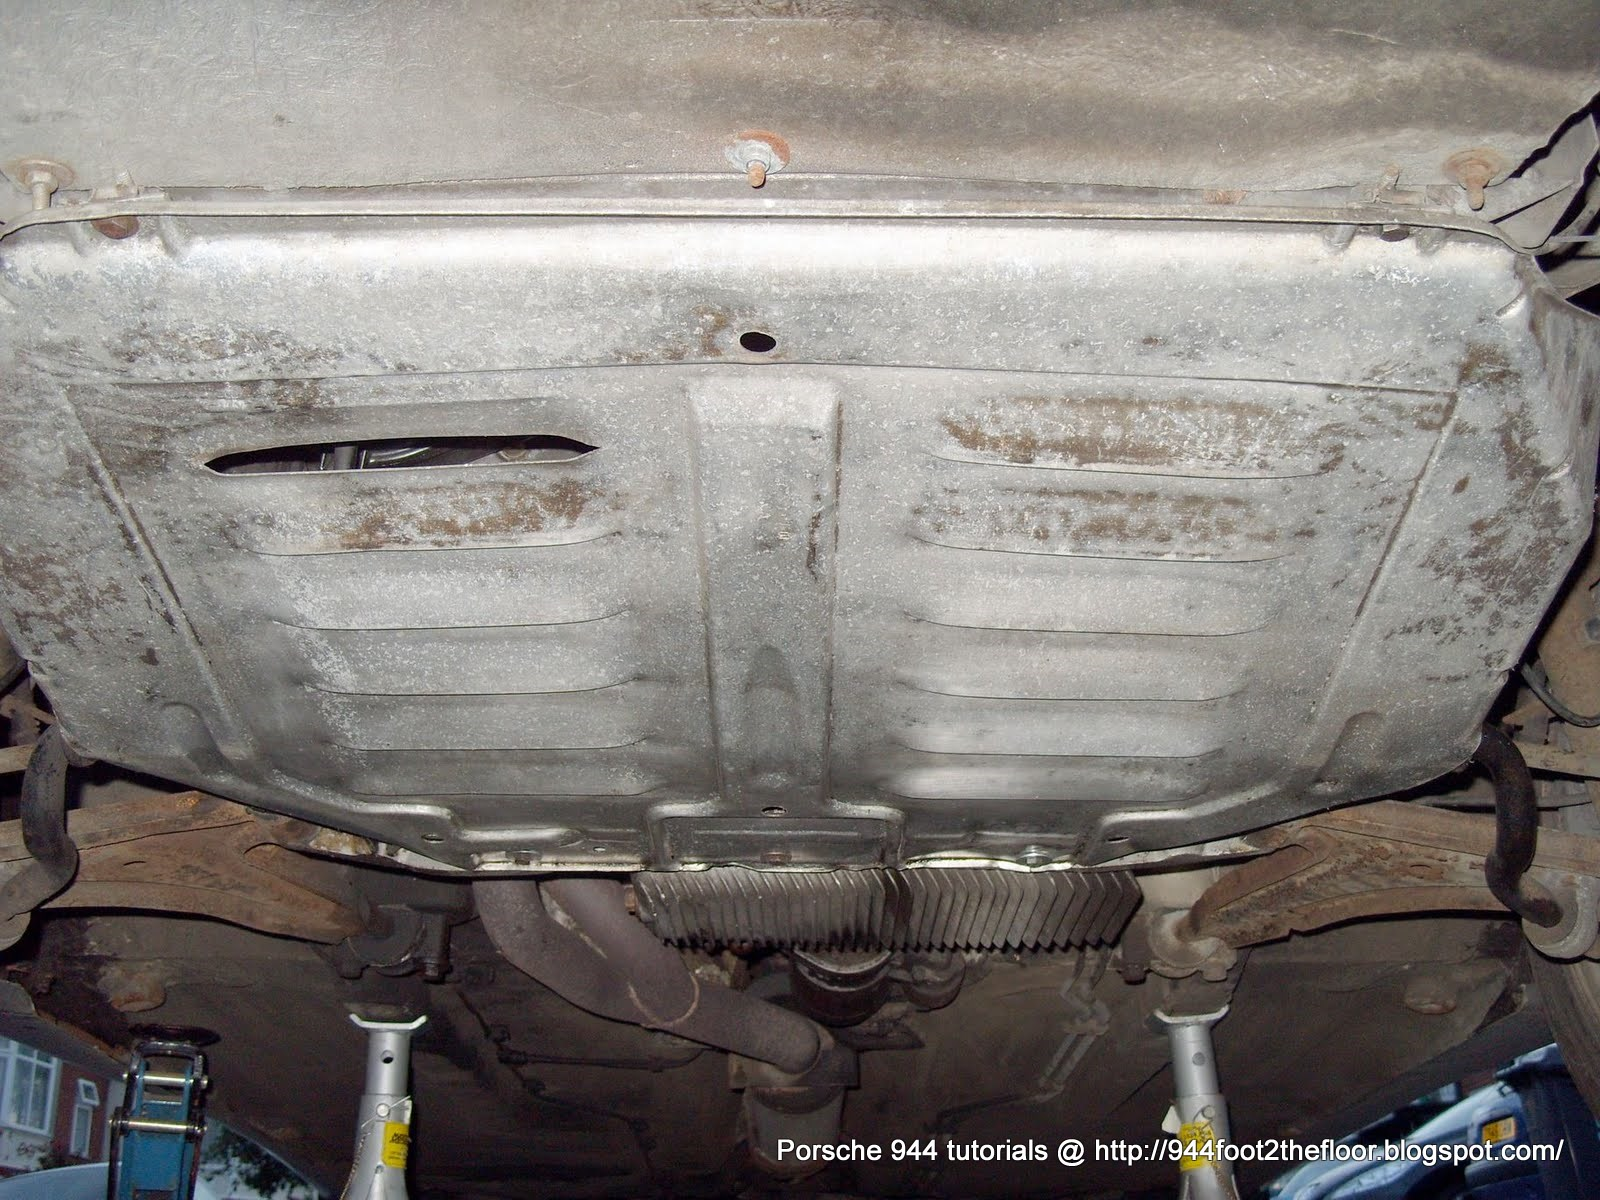 944 Foot To The Floor: How to remove and replace OPRV (Oil